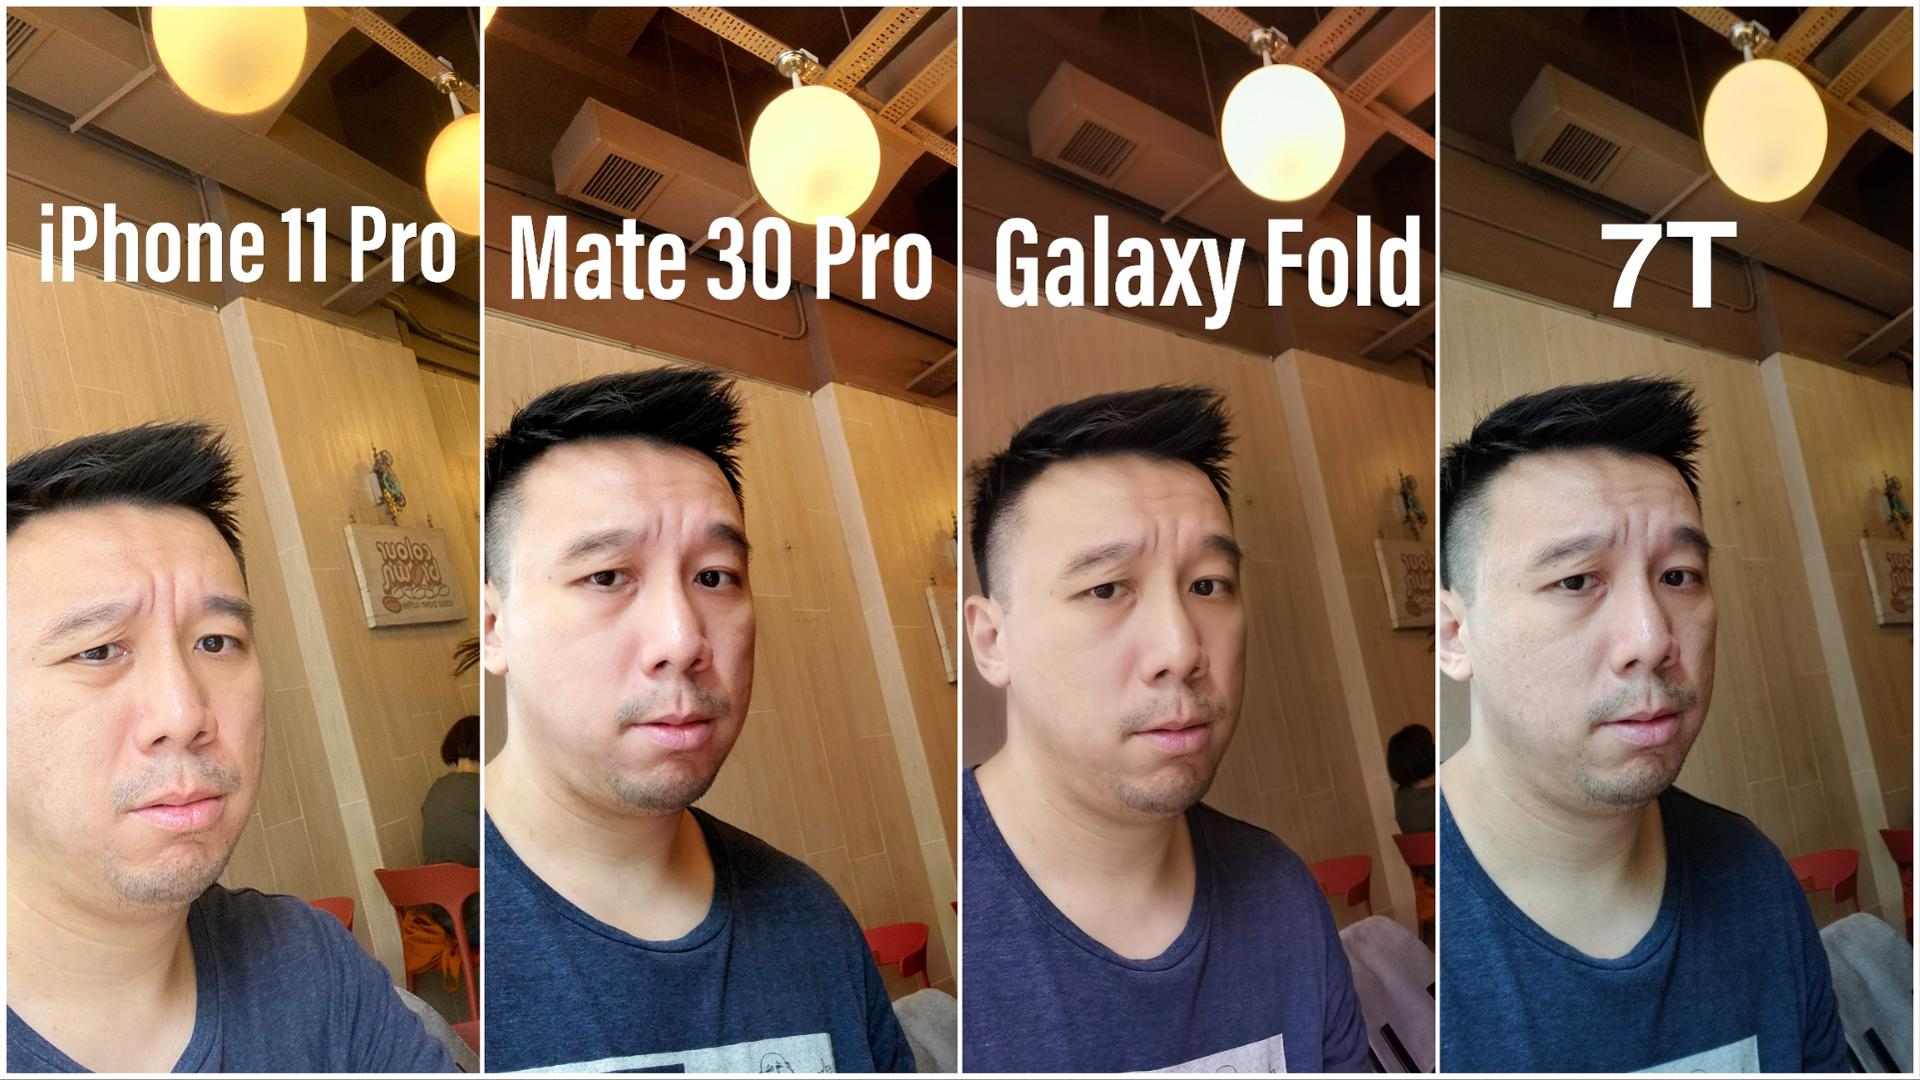 Huawei Mate 30 Pro vs iPhone 11 Pro vs Samsung GALAXY Fold Comparatia Camerelor selfie